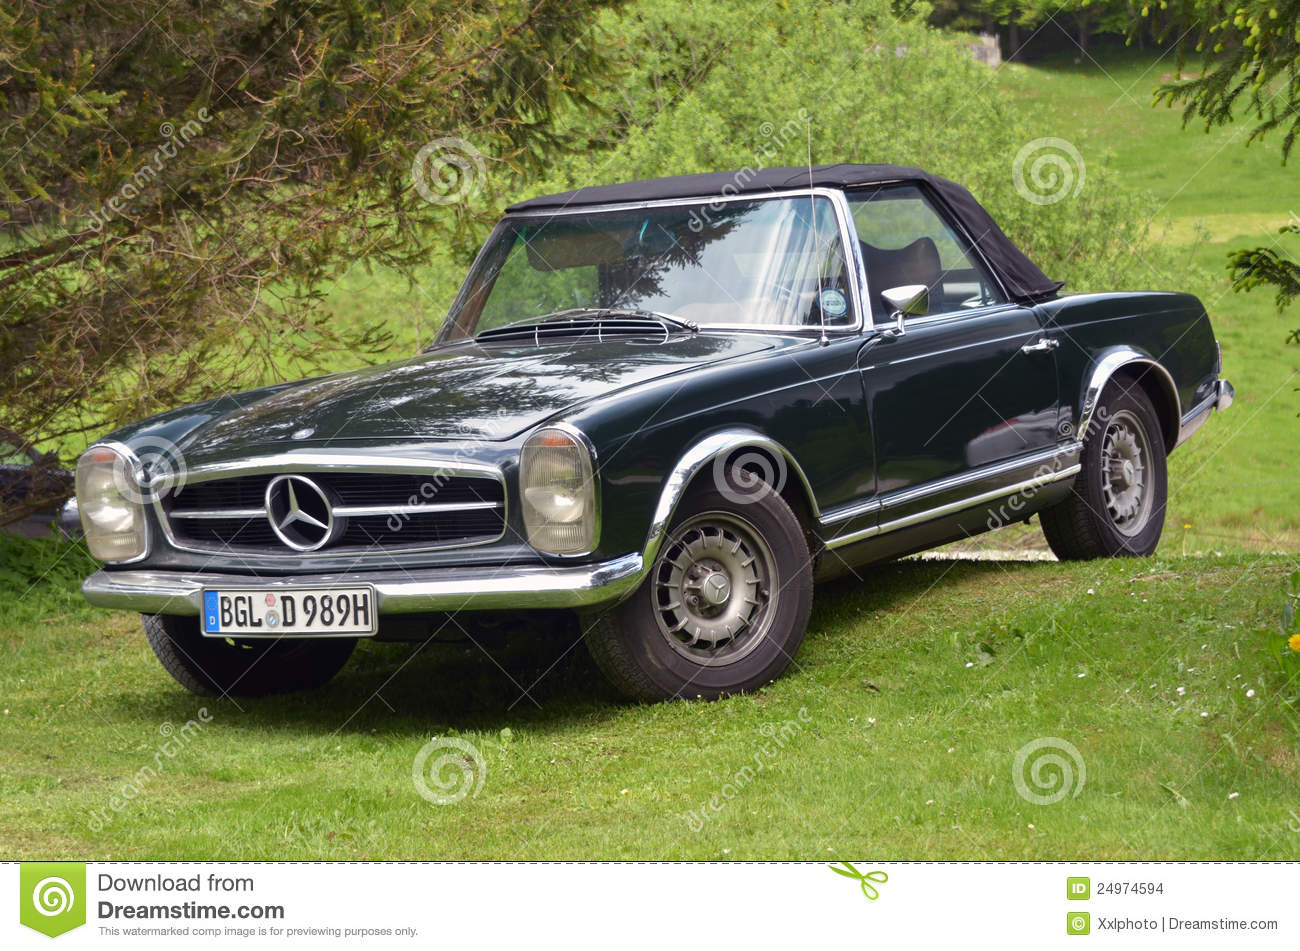 mercedes benz 280 sl cabrio editorial stock image image of convertible compaigner 24974594. Black Bedroom Furniture Sets. Home Design Ideas